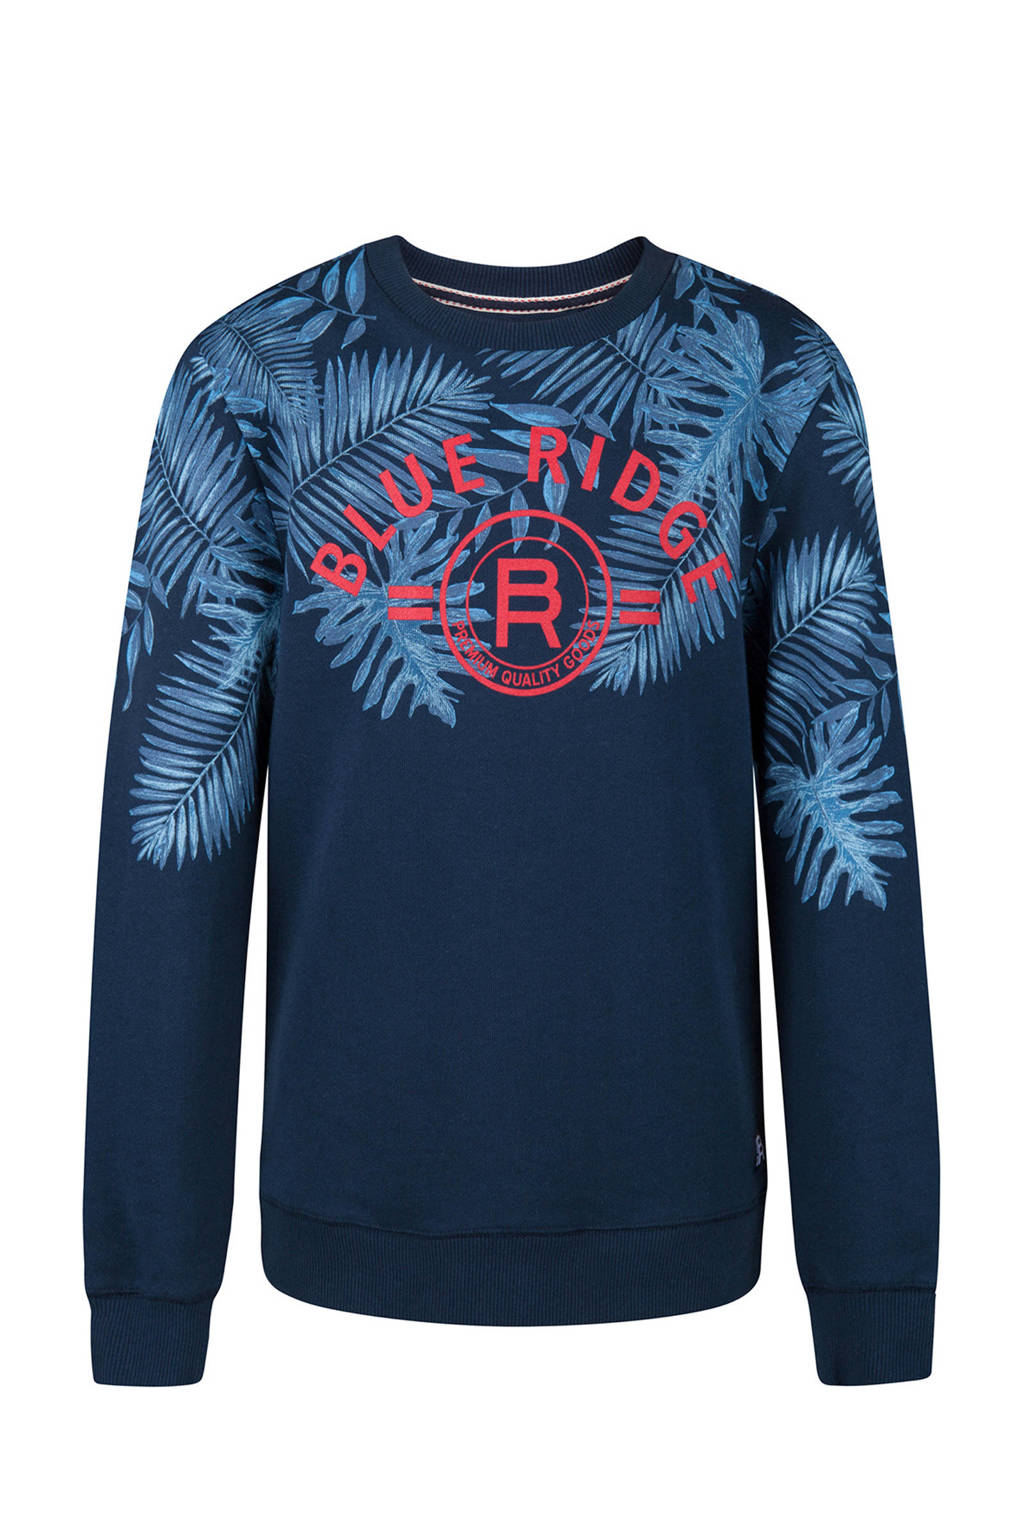 WE Fashion sweater met print donkerblauw, Donkerblauw/blauw